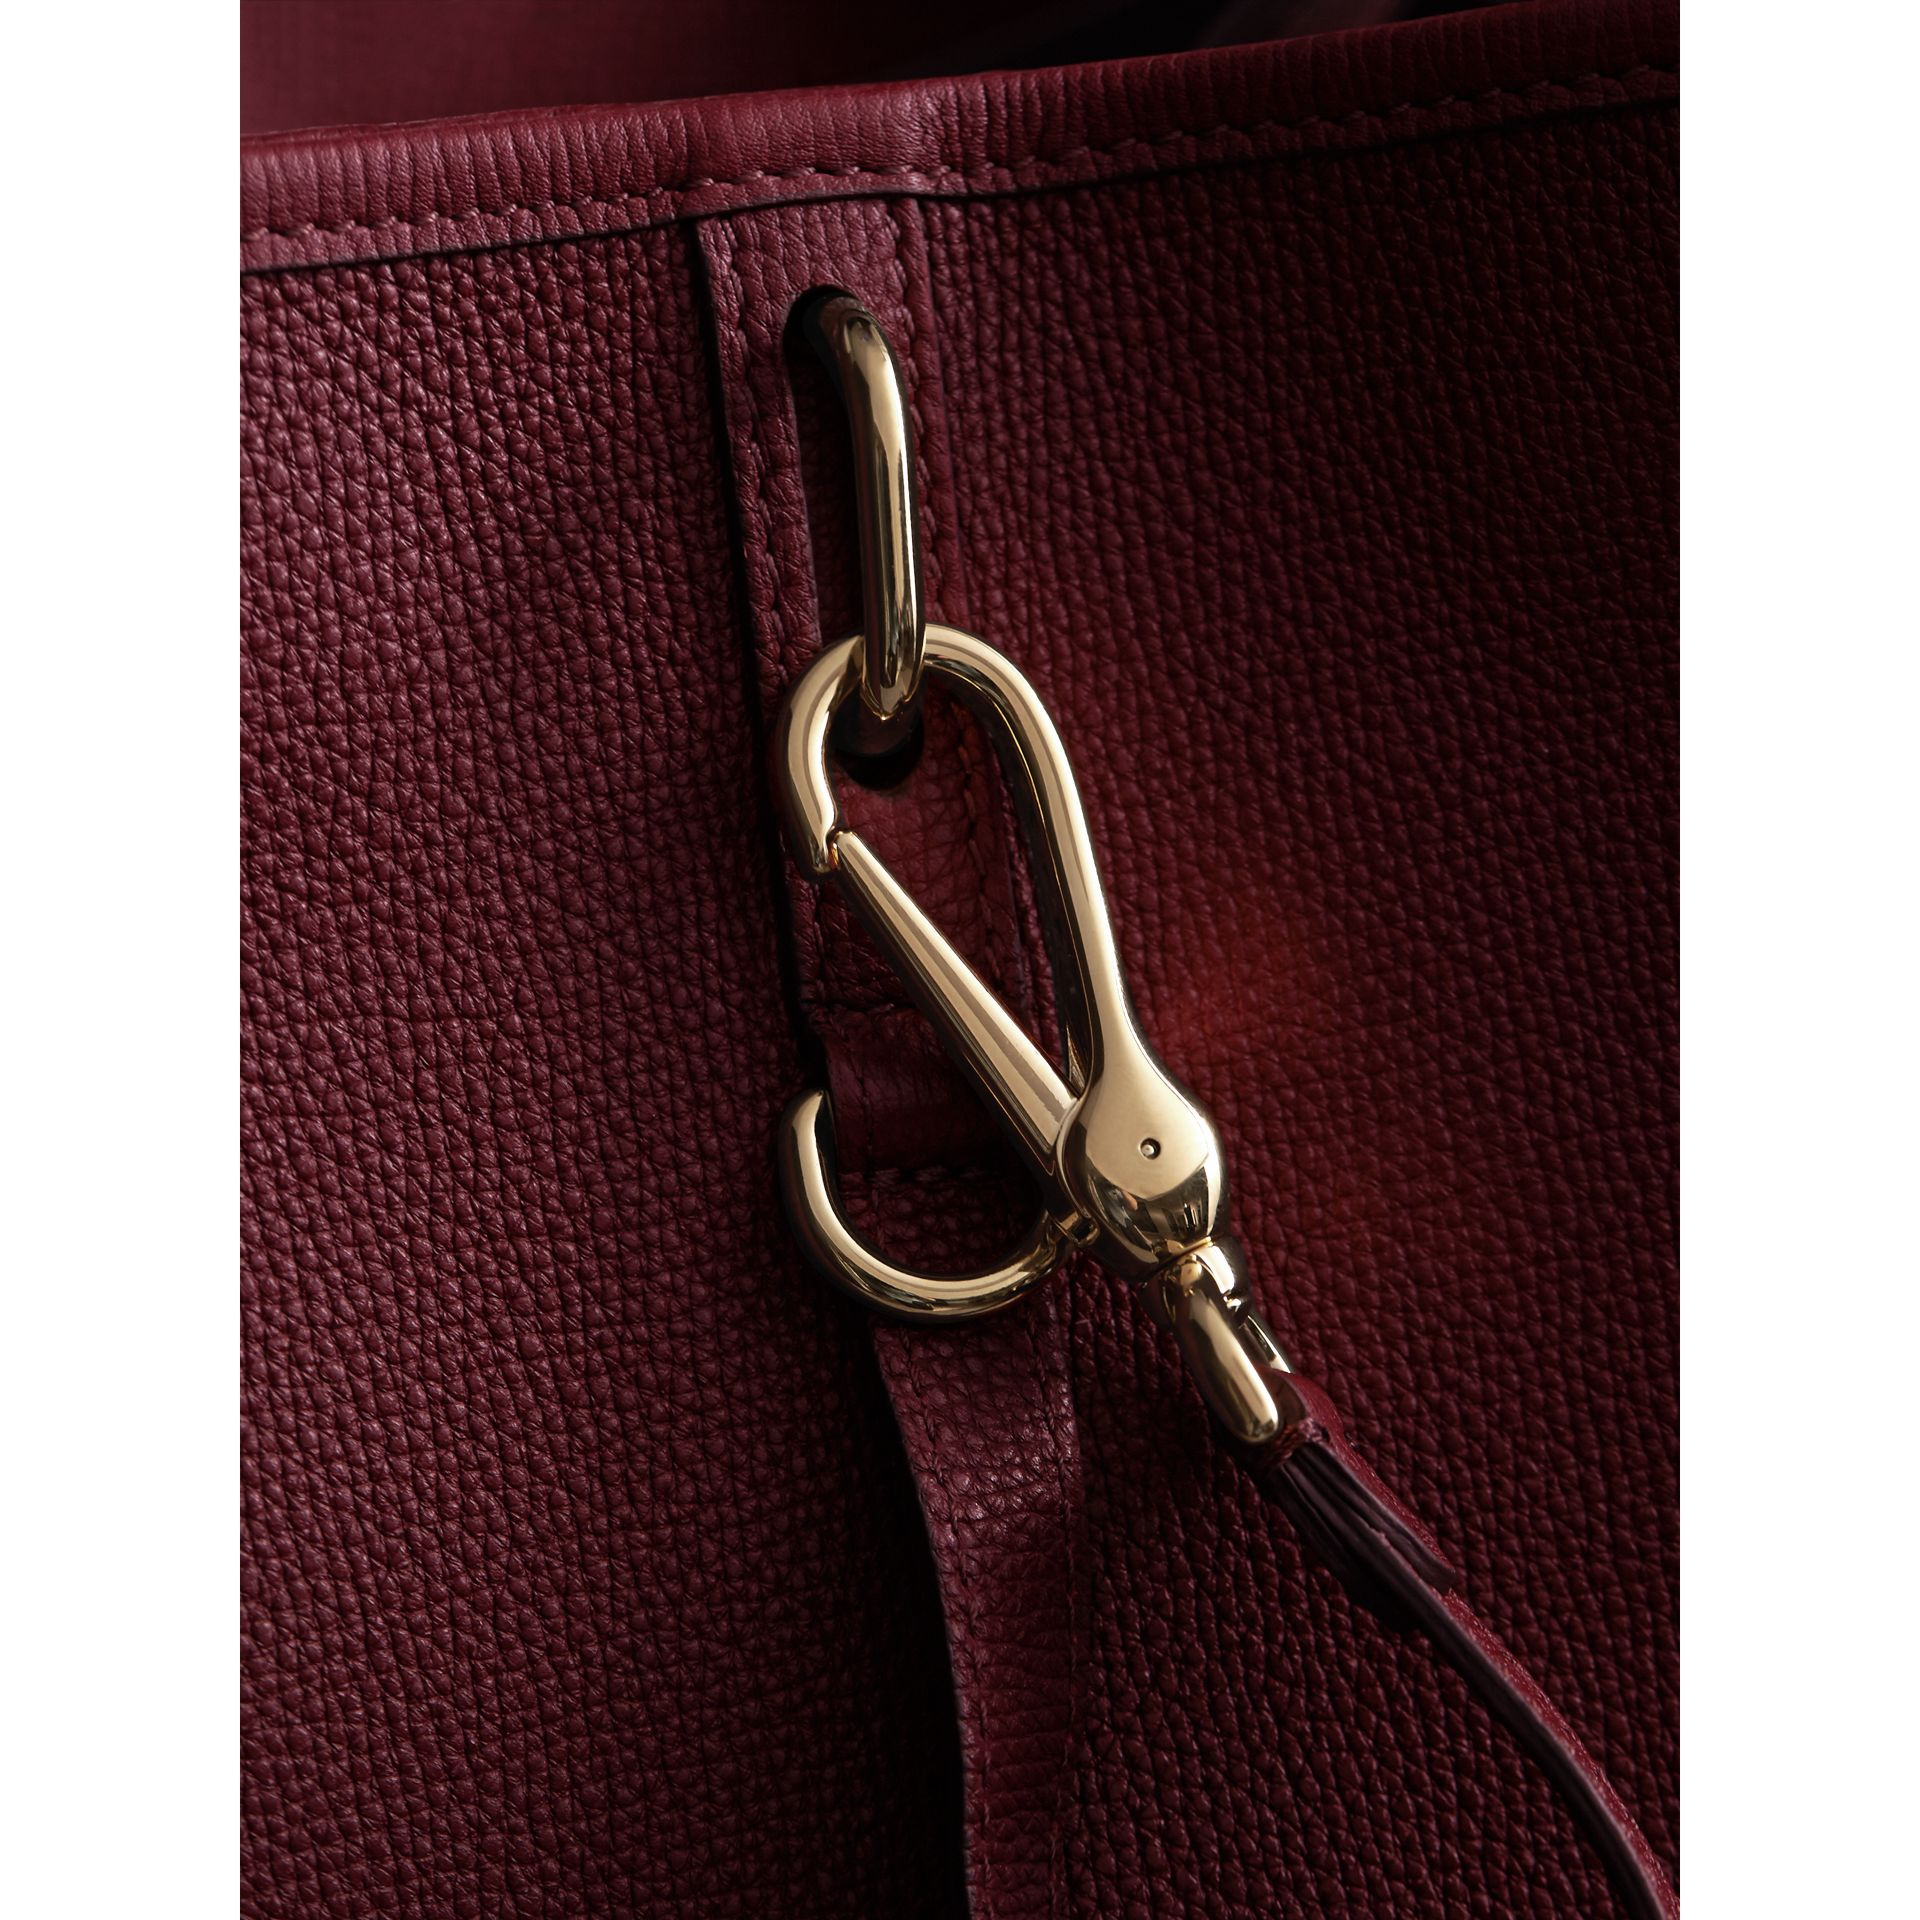 Medium Grainy Leather Tote Bag in Mahogany Red - Women | Burberry Hong Kong - gallery image 2